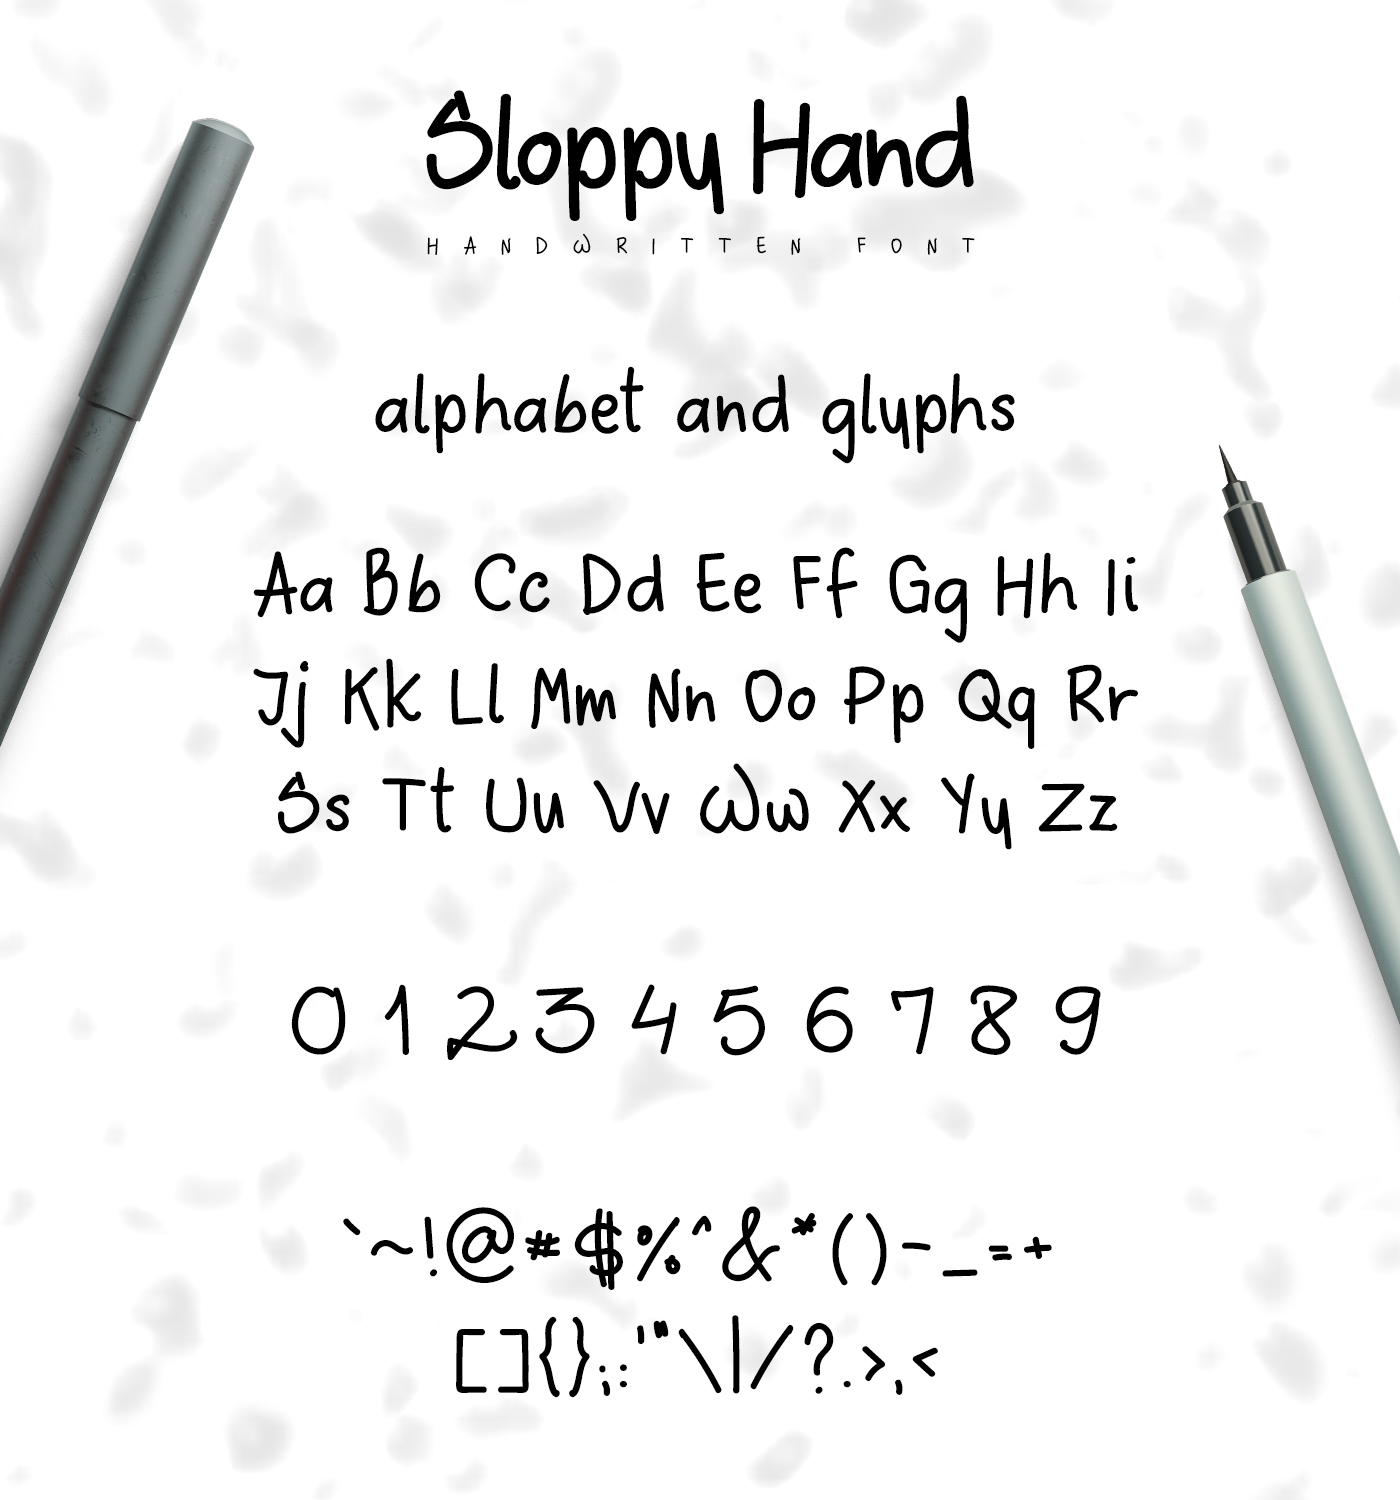 Sloppy Hand - a Handwritten Font example image 2